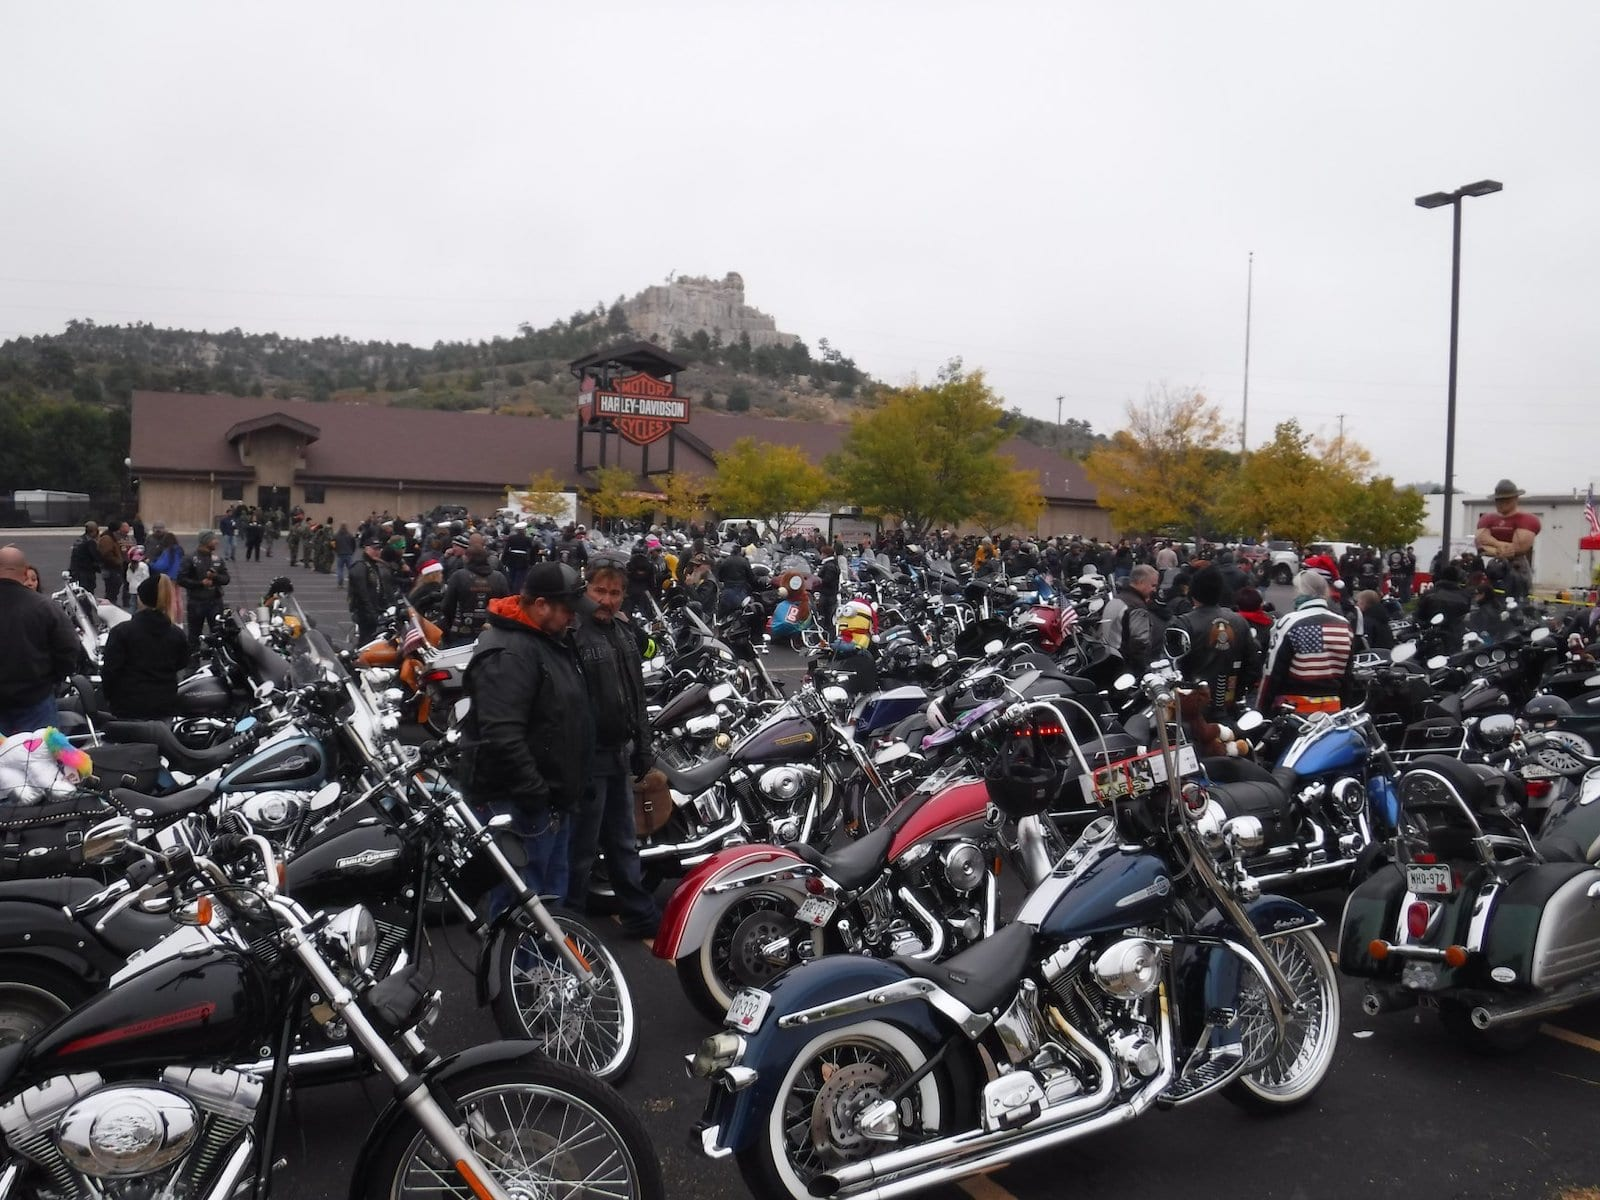 Rocky Mountain Motorcycle Museum in Colorado Springs